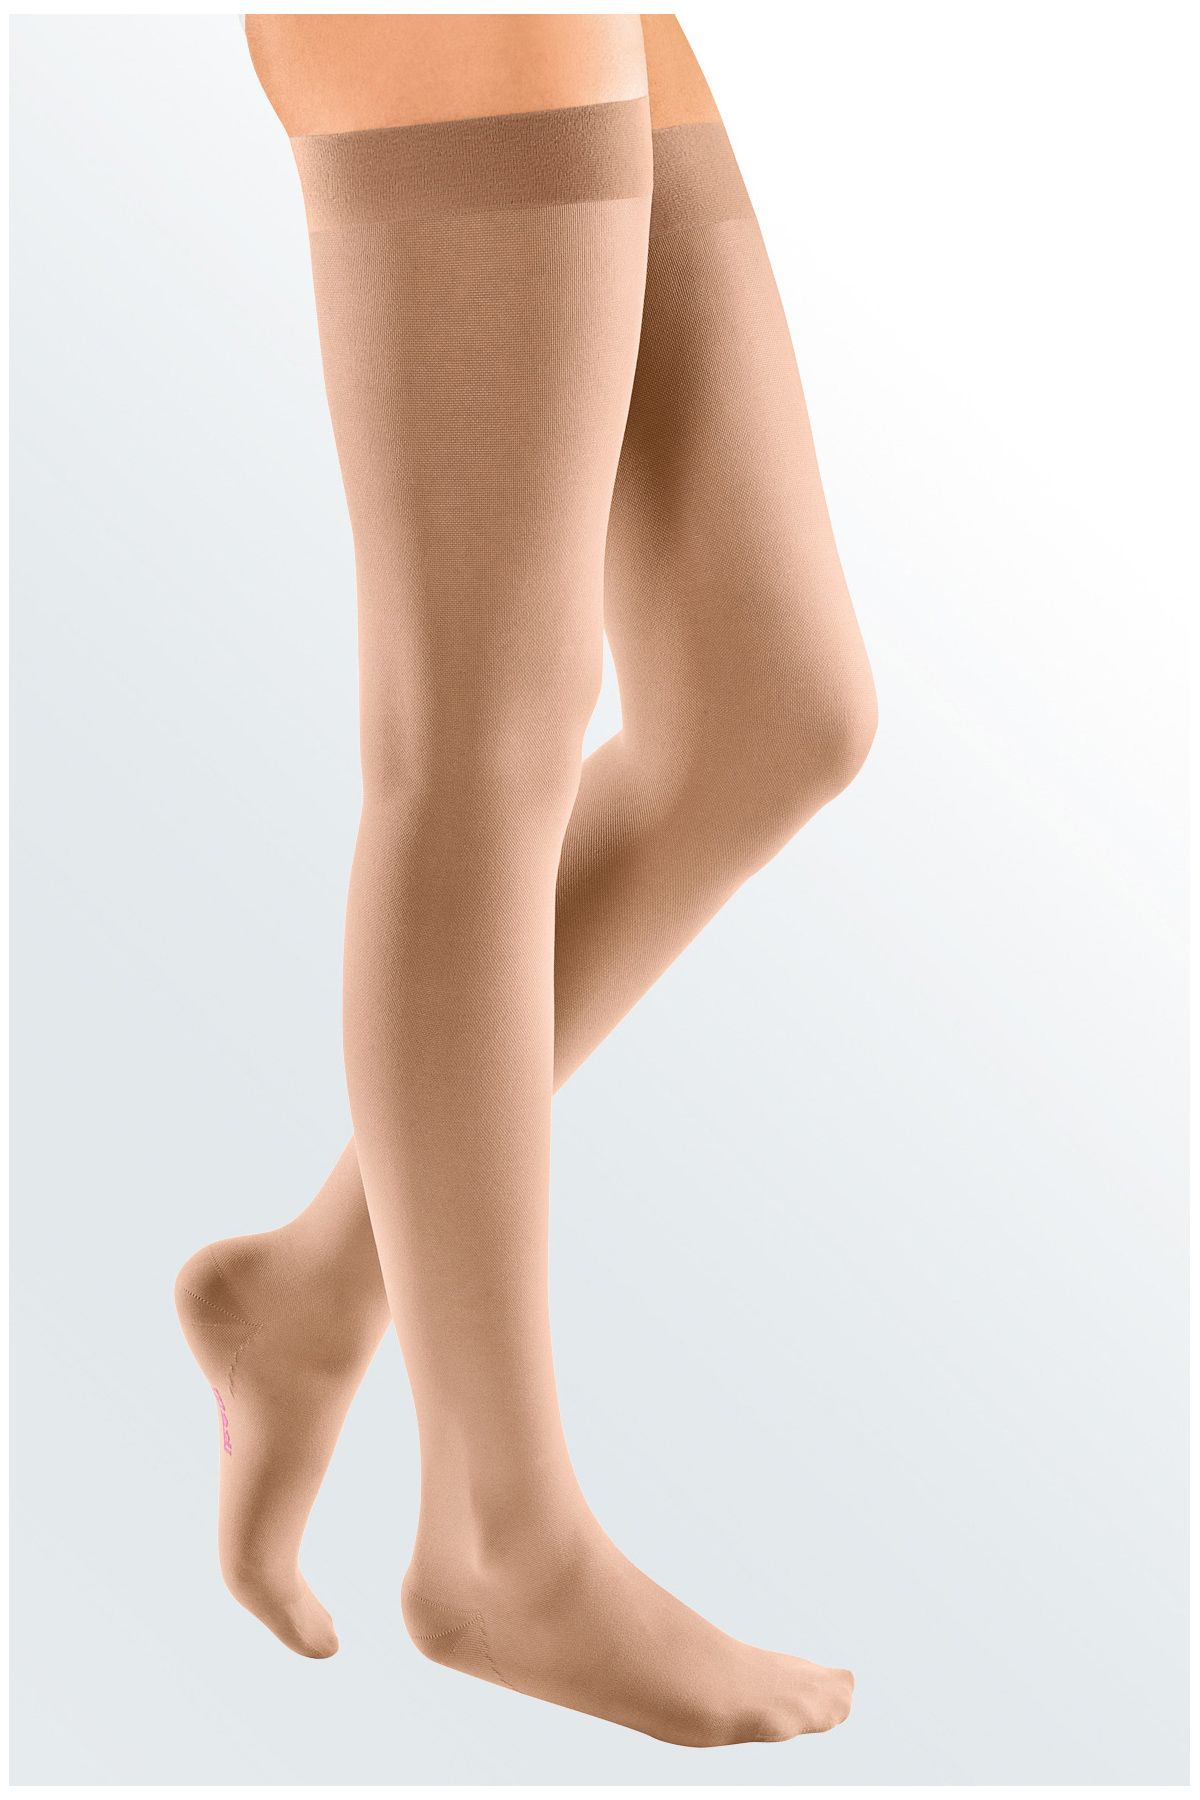 4ec9314830838e Mediven Elegance Class 1 Thigh Compression Stockings with Lace Topband